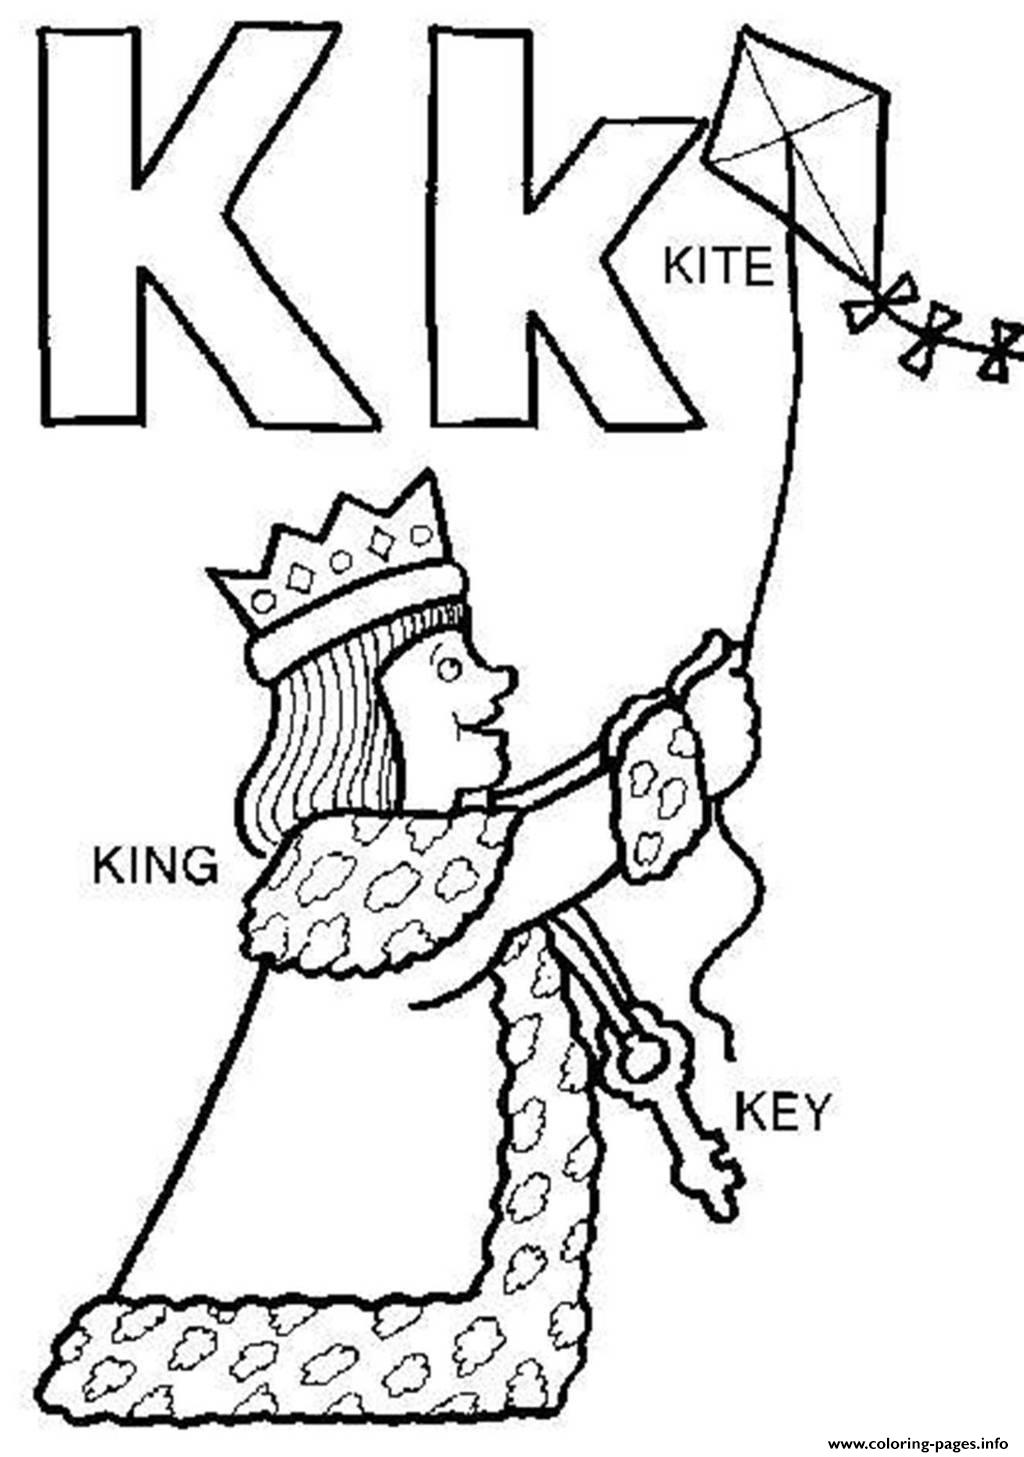 King And Kite Alphabet S Freed97d Coloring Pages Printable